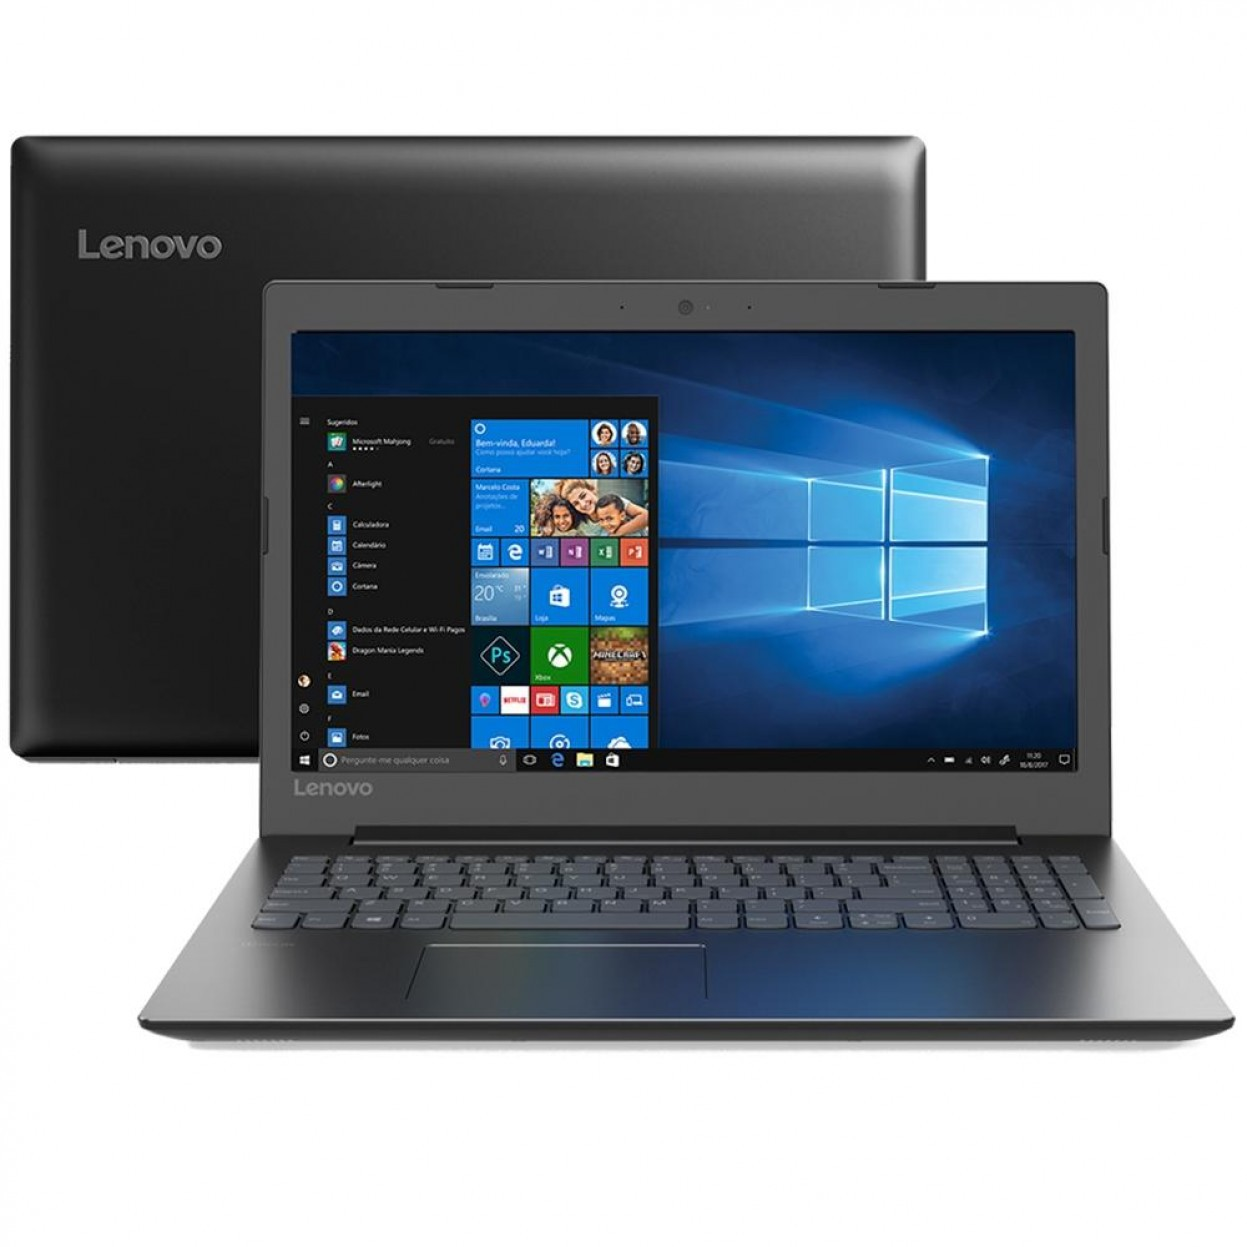 Notebook Lenovo B330 Core I3 7020u Memoria 12gb Ssd 480gb Tela 15.6' Hd Windows 10 Home + Ganhe Headset Sem Fio Philips